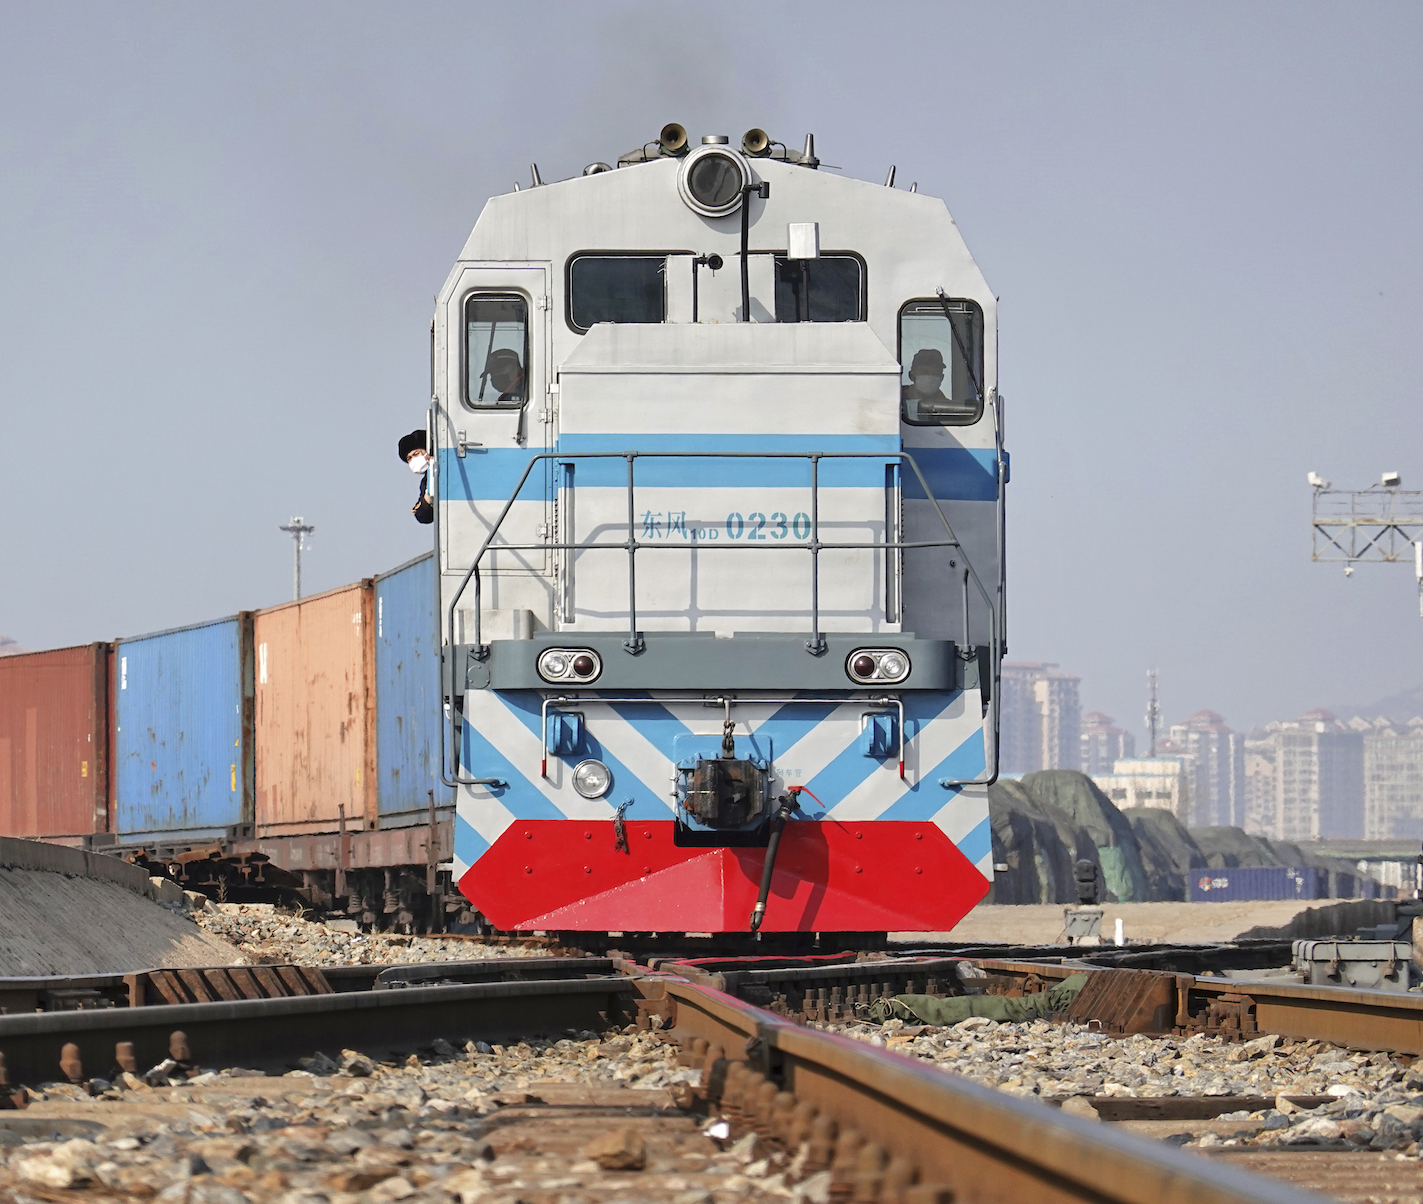 A freight train is set to leave a platform in Yantai city in east China's Shandong province, on the Asia-Europe railway that ends in Liege, Belgium.